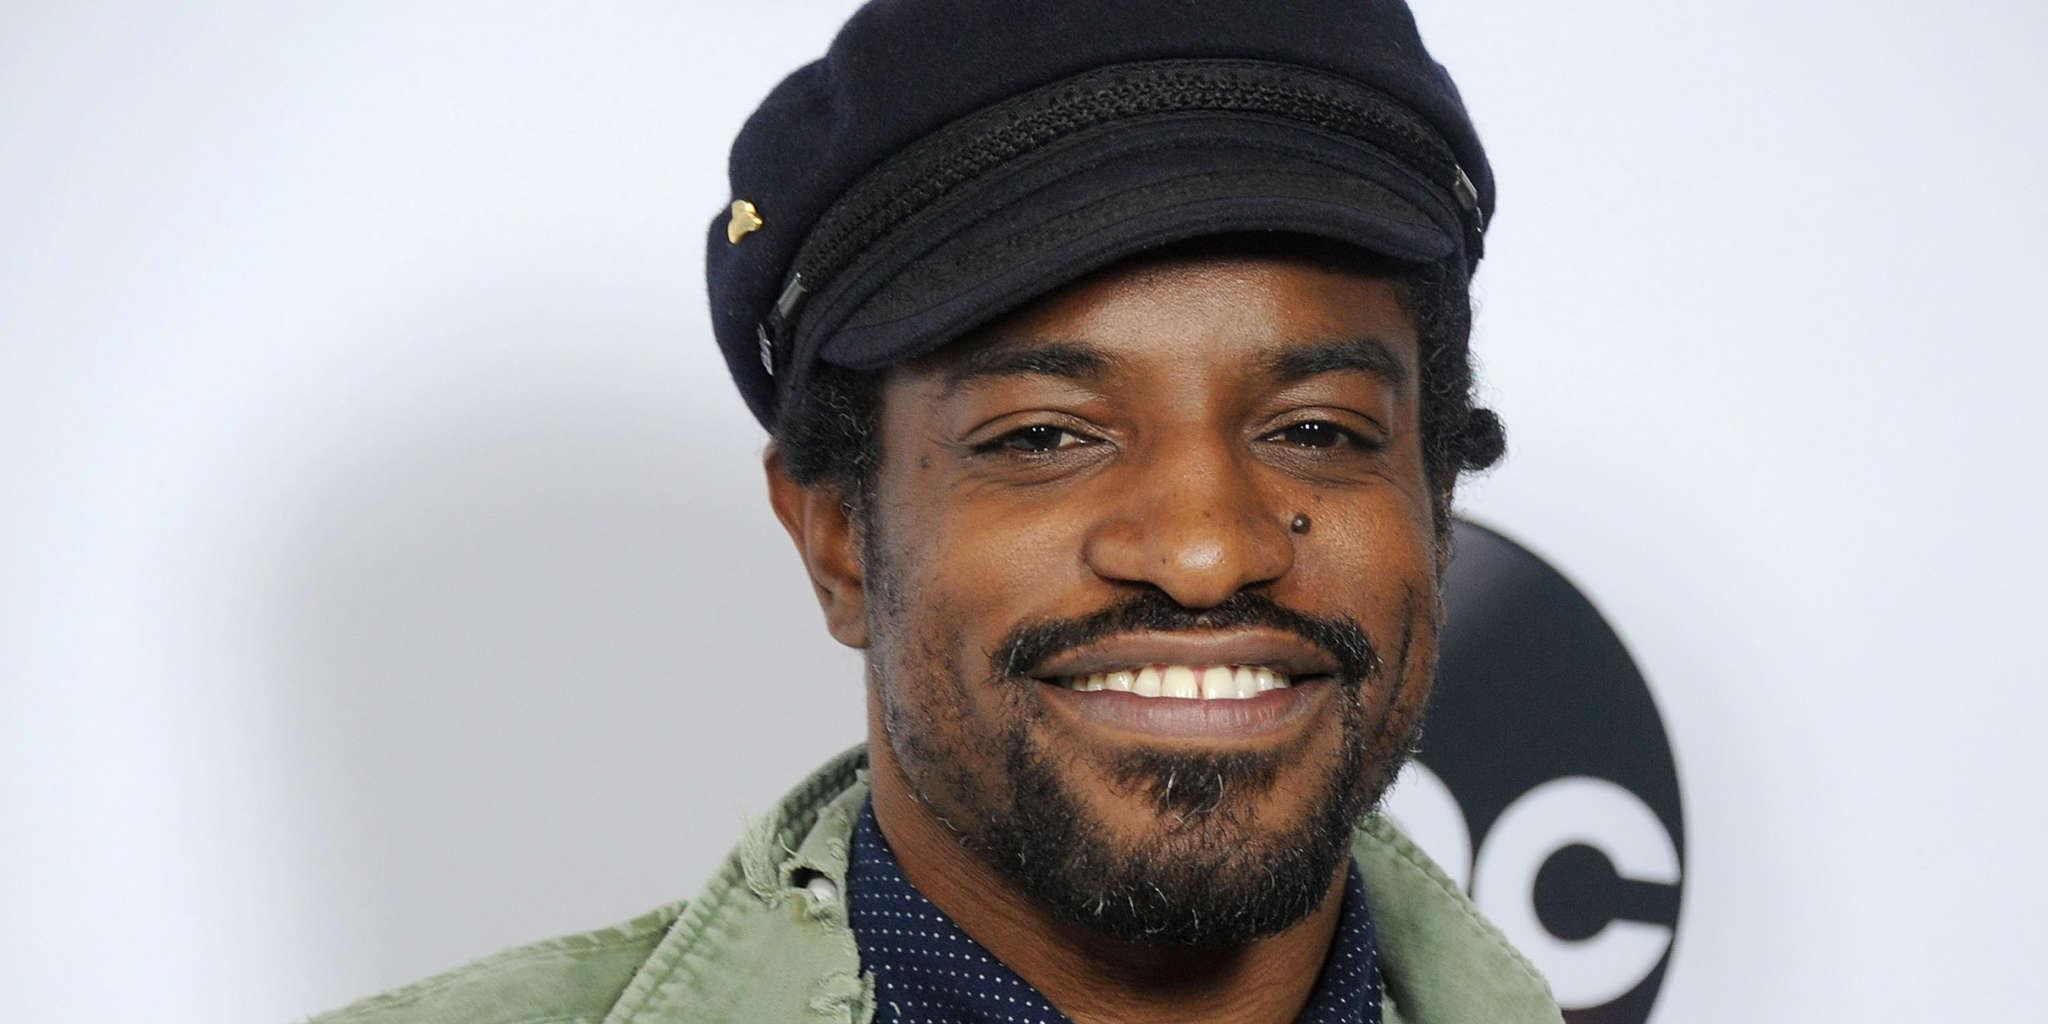 Andre 3000 Has Lost The Confidence To Make New Music -- The Internet Reminds Him That He Is A Legend